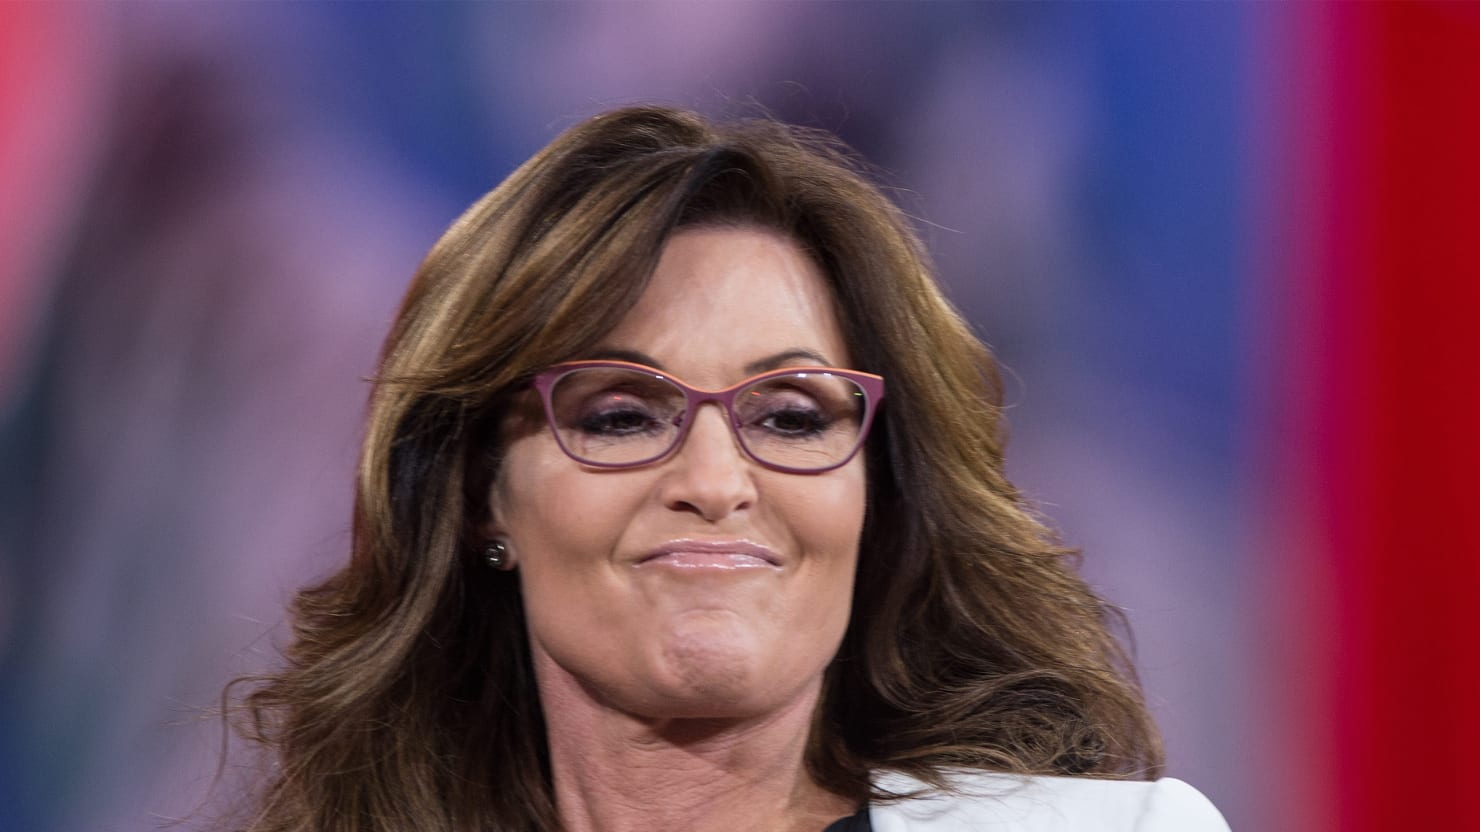 Sarah palins bitter cry for attention sarah palin the duggars and a host of other conservative folk heros decry the mainstream media while ceaselessly courting it its a good schtick thecheapjerseys Choice Image